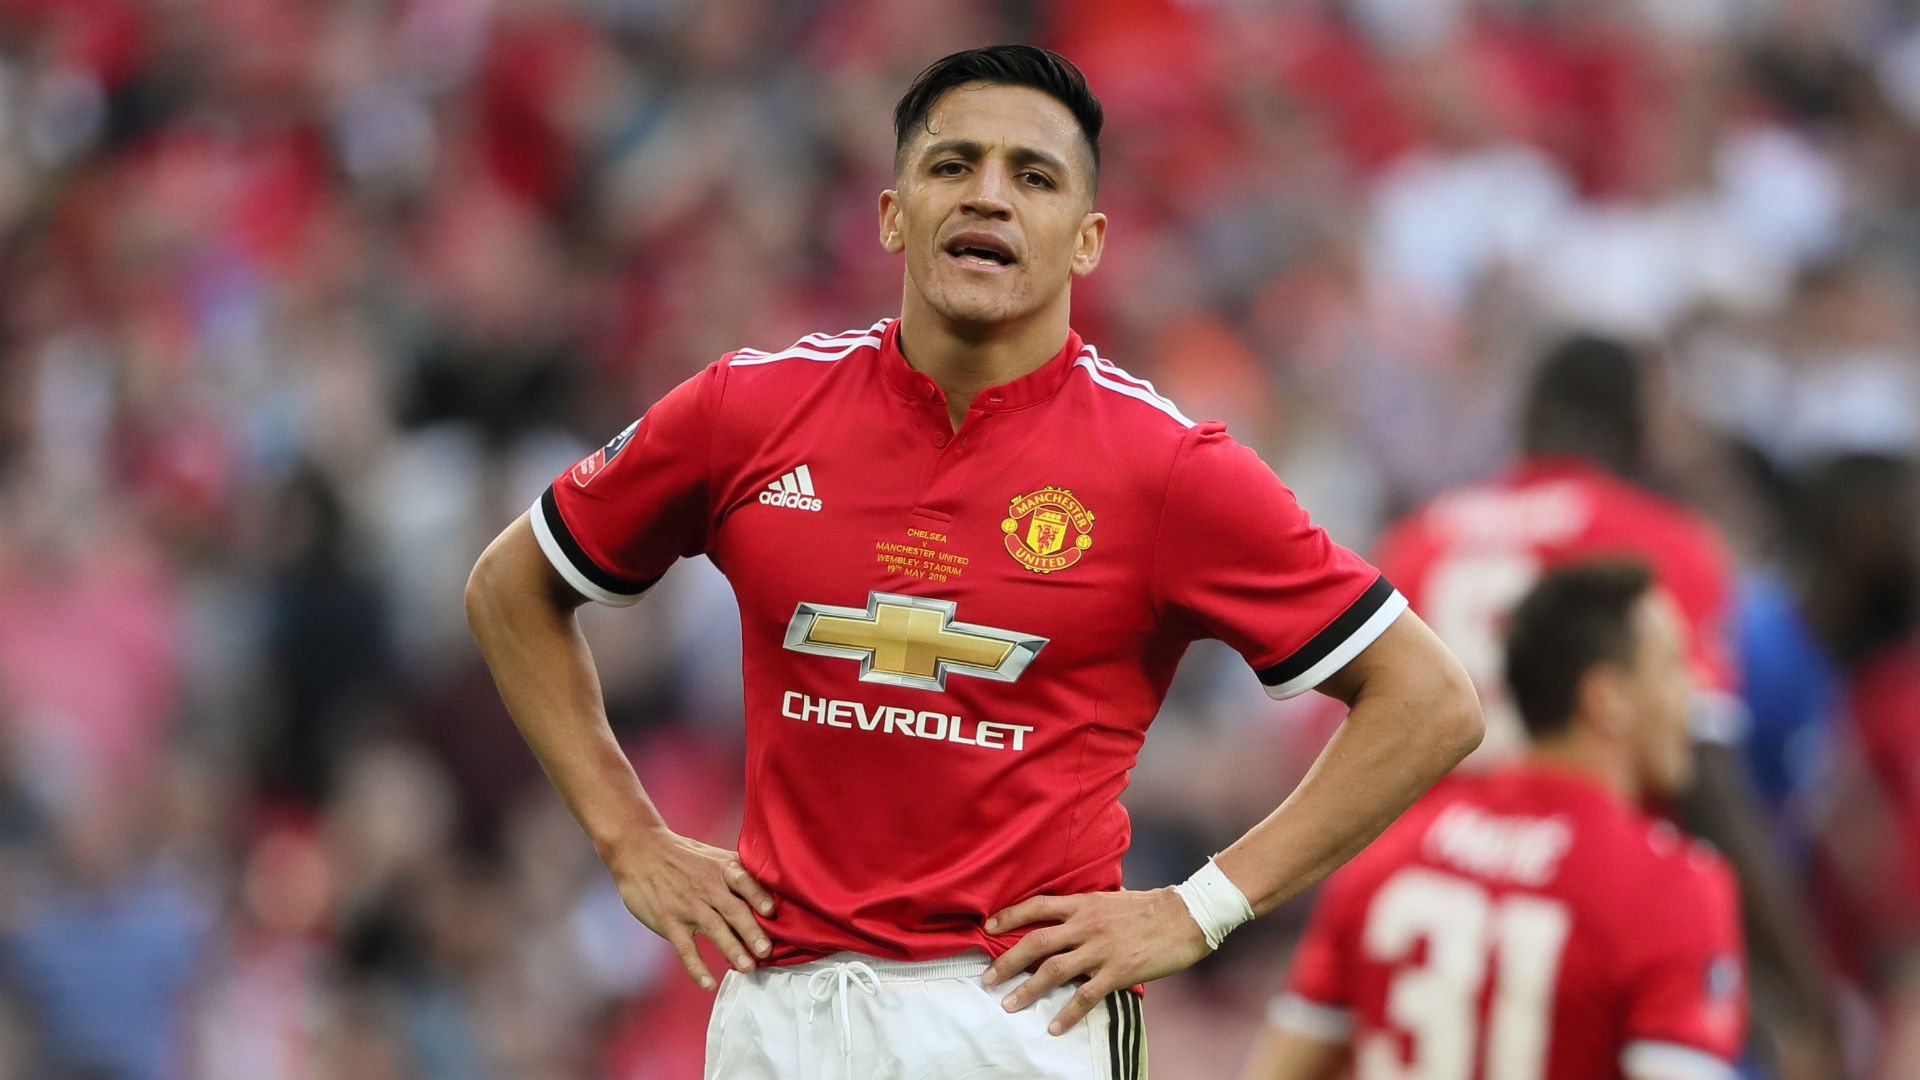 Manchester United kick-off pre-season training in America without Alexis Sanchez